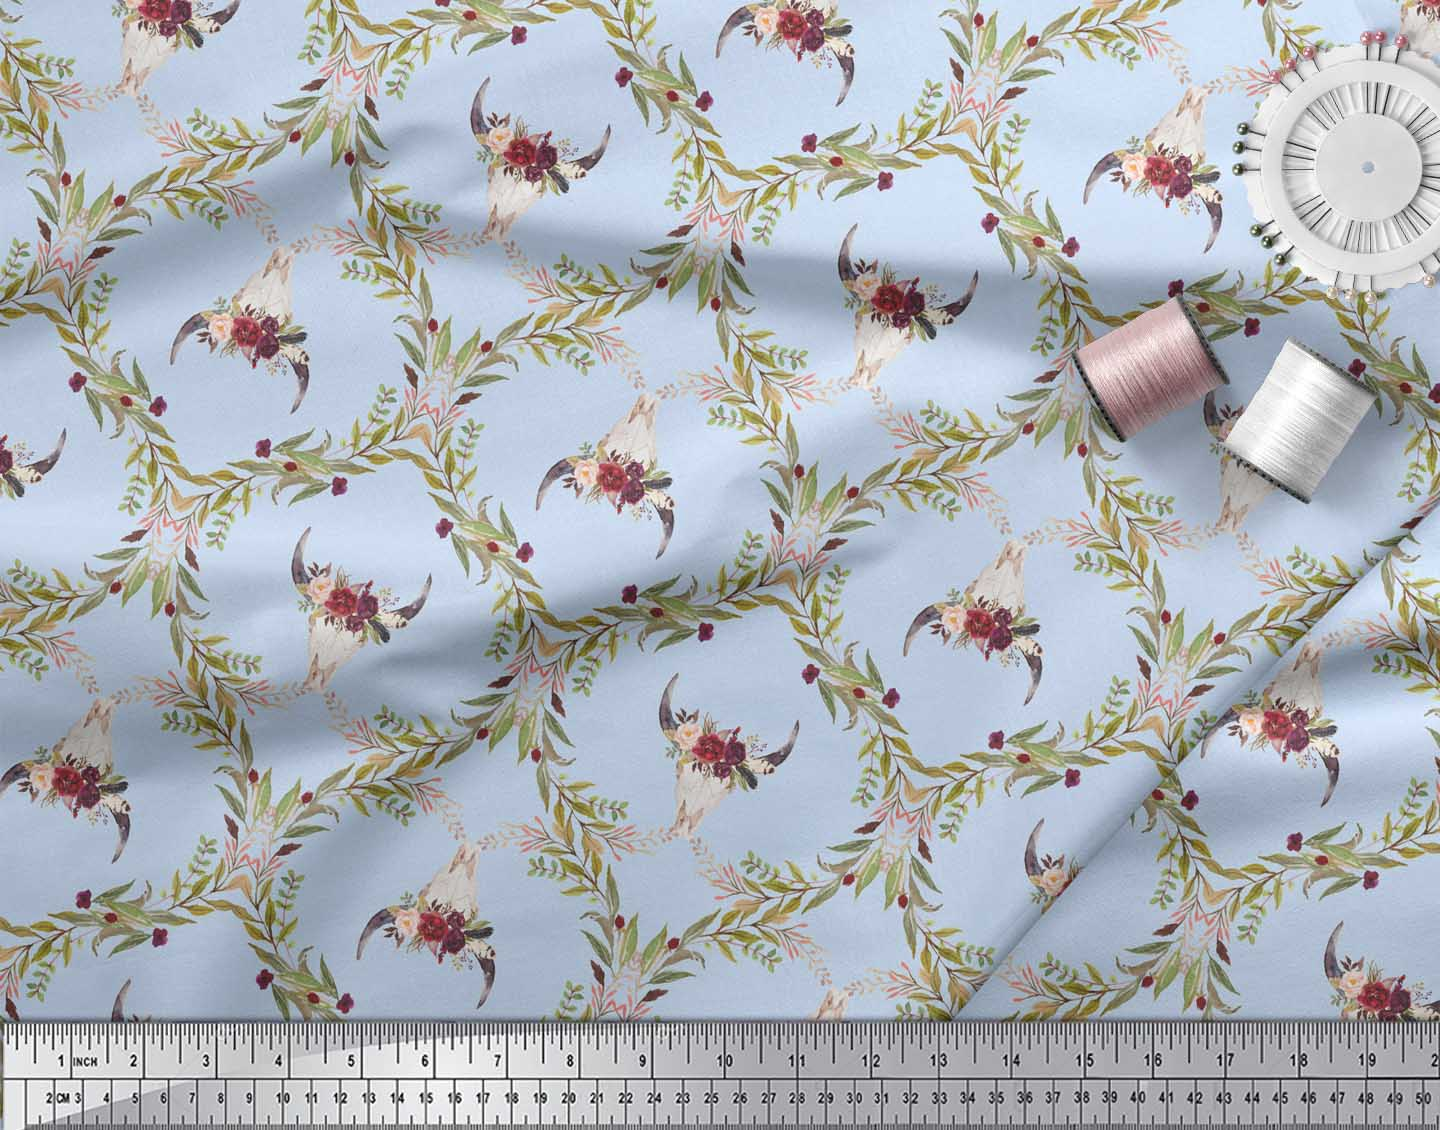 Soimoi-Blue-Cotton-Poplin-Fabric-Floral-amp-Cow-Skull-Head-Damask-07Z thumbnail 3